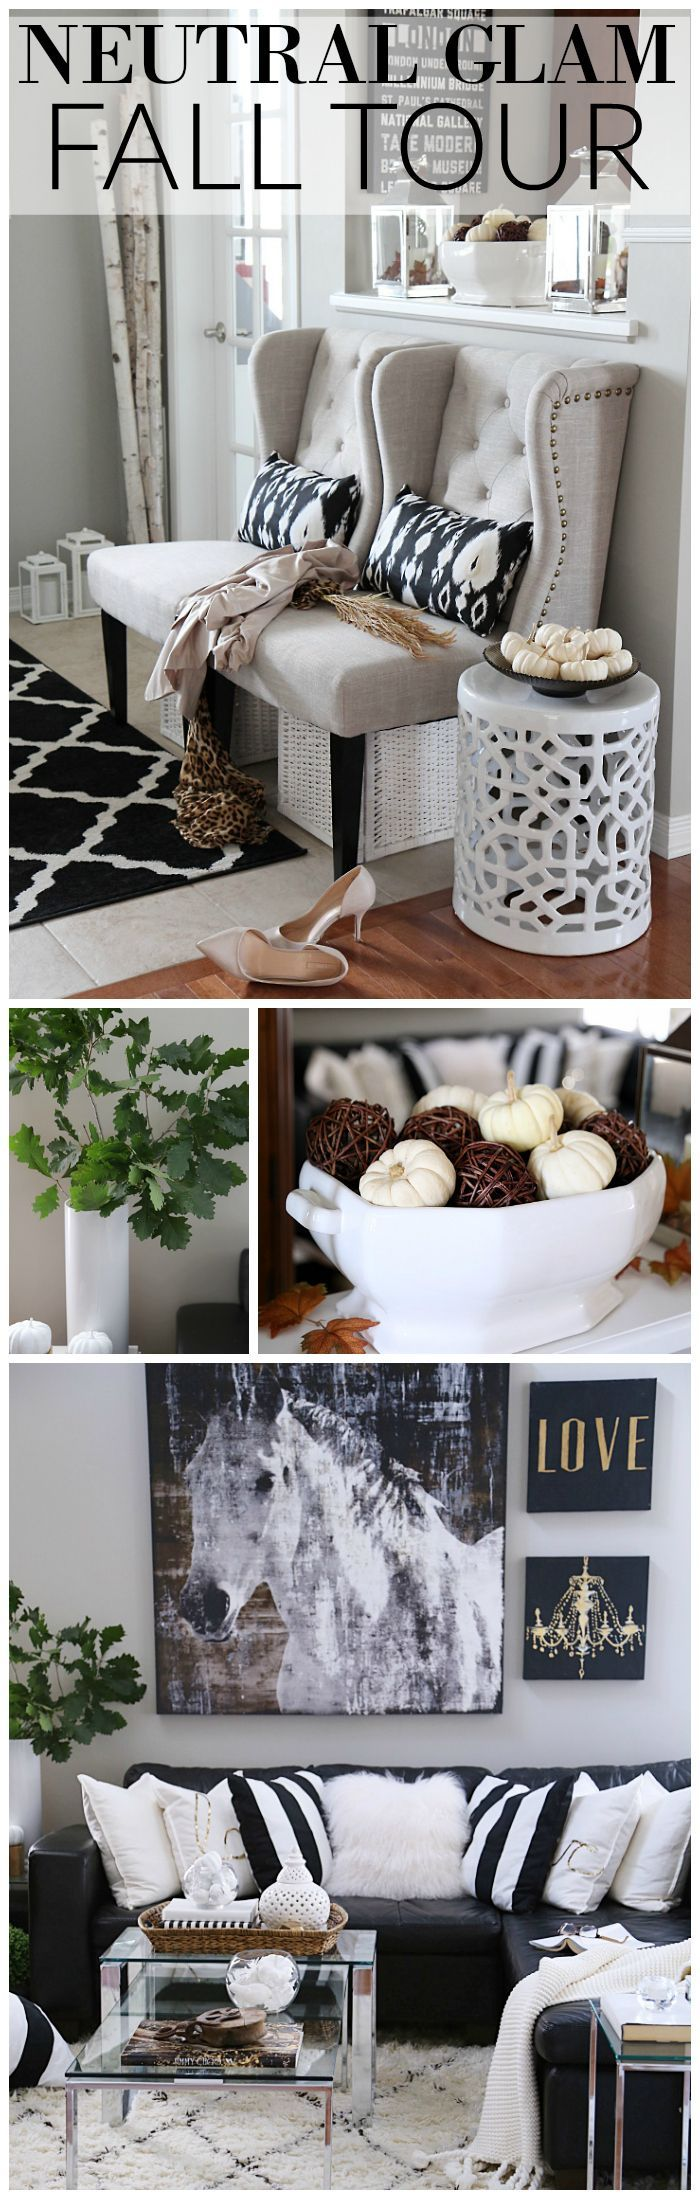 Is White A Neutral Color neutral glam fall tour and fall decor ideas | neutral color scheme